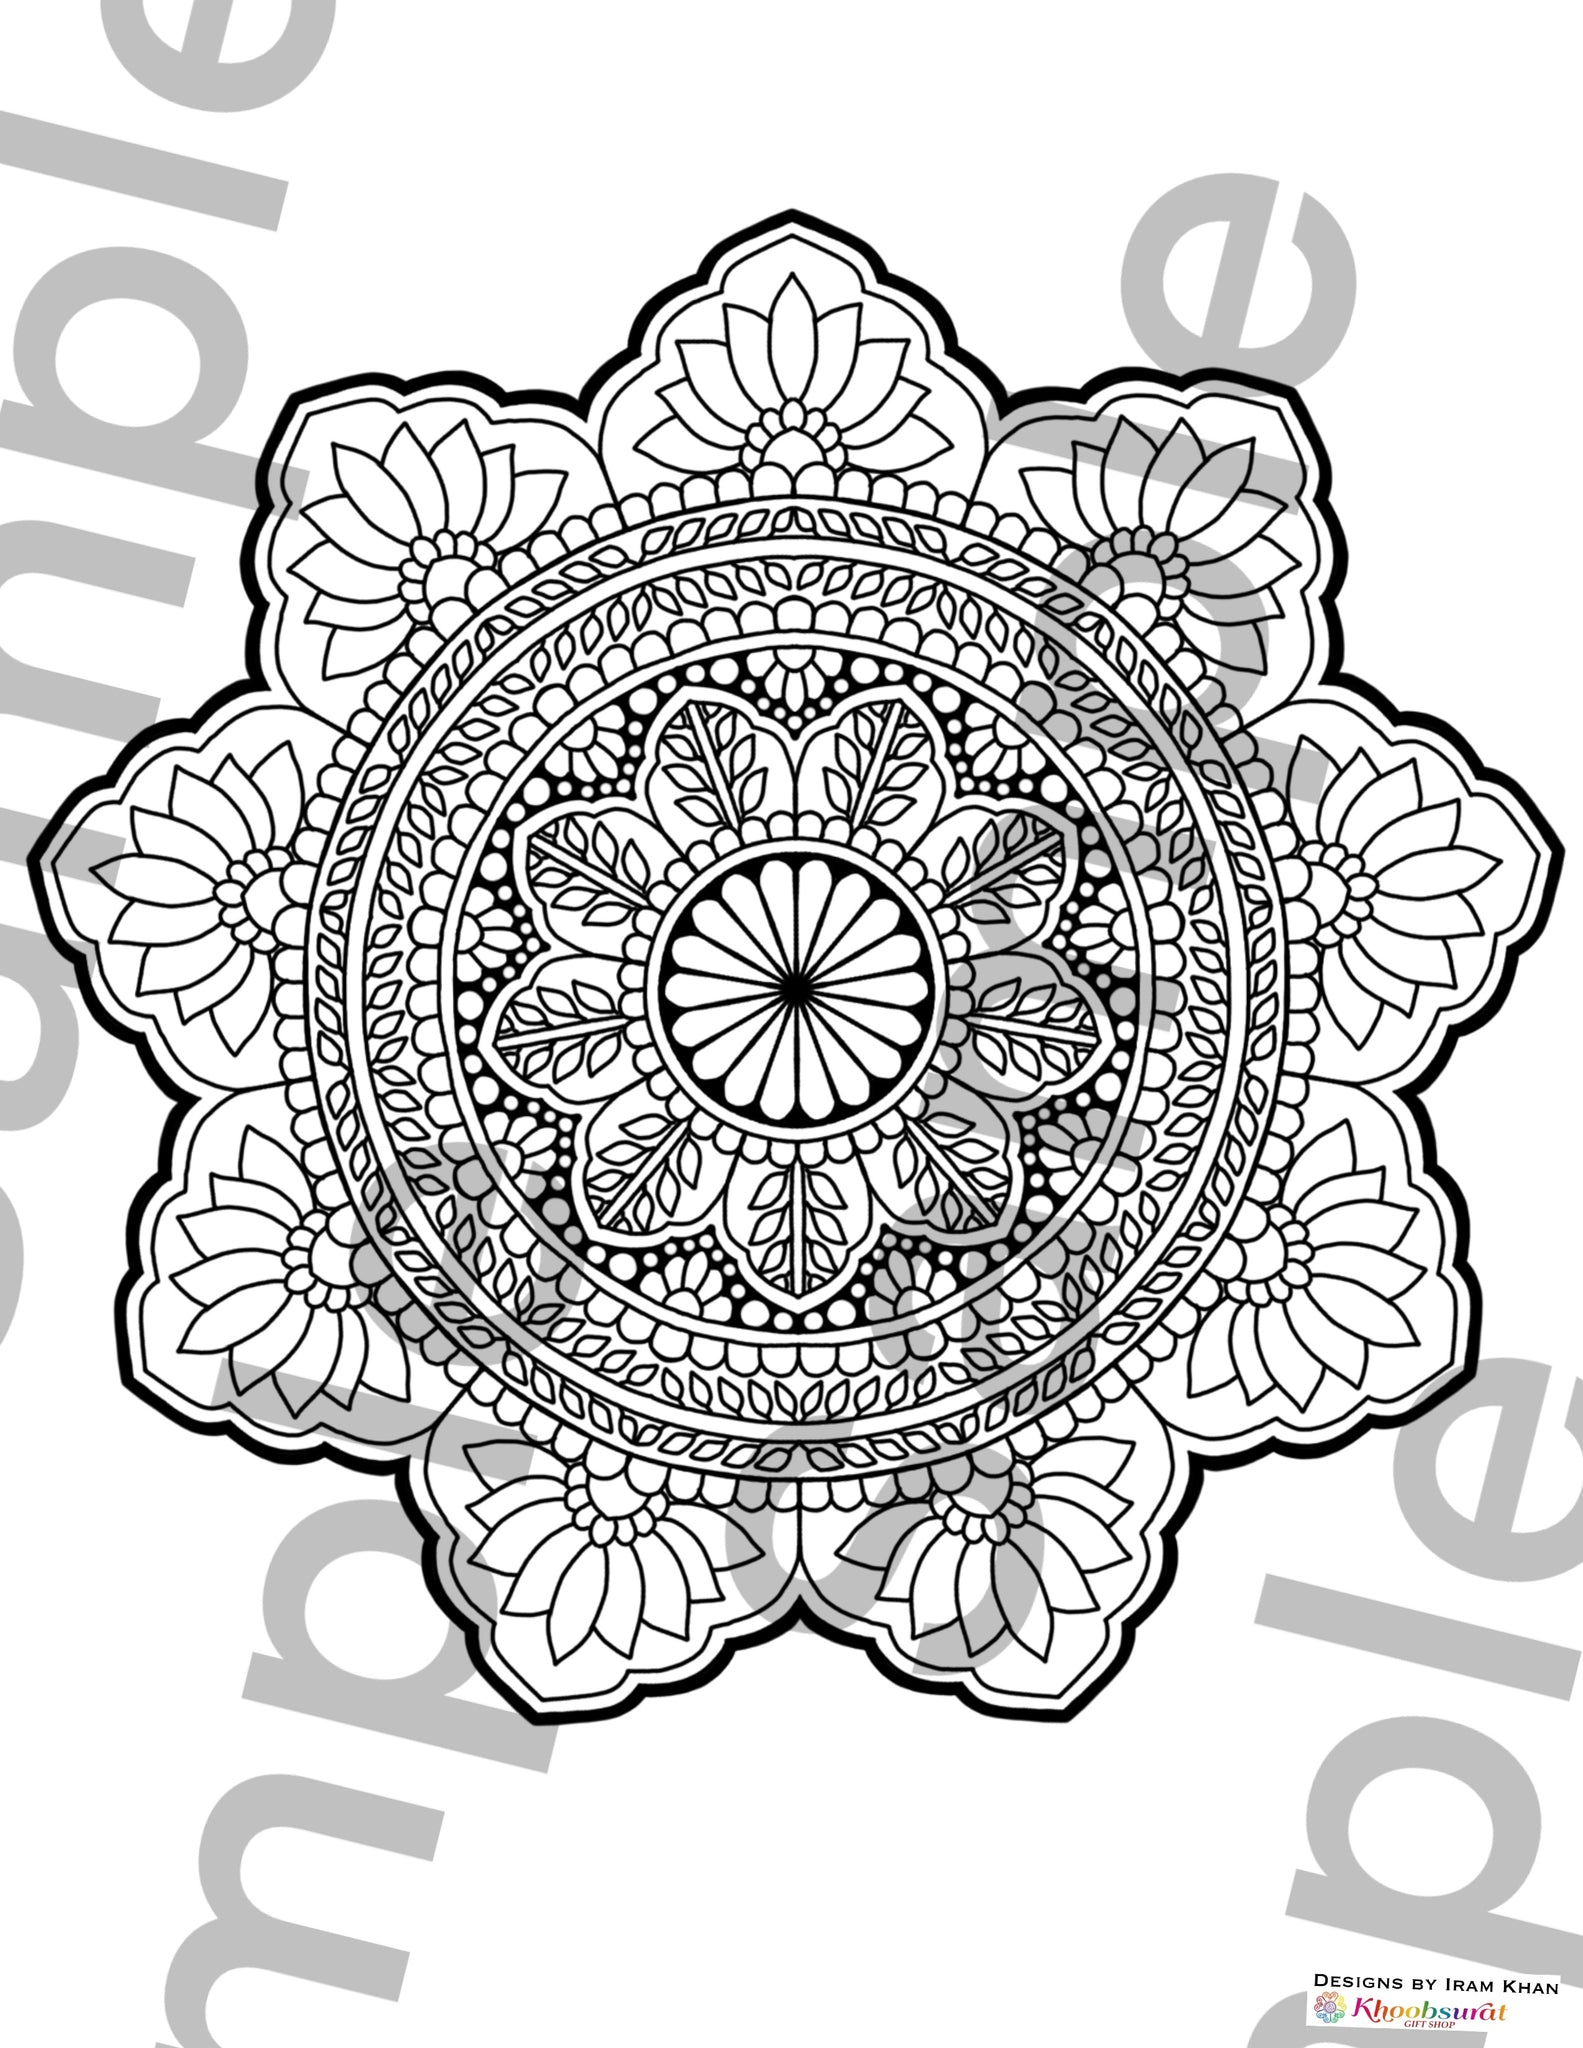 311 Best Fashion Coloring Pages for Adults images | Coloring pages ... | 2048x1583